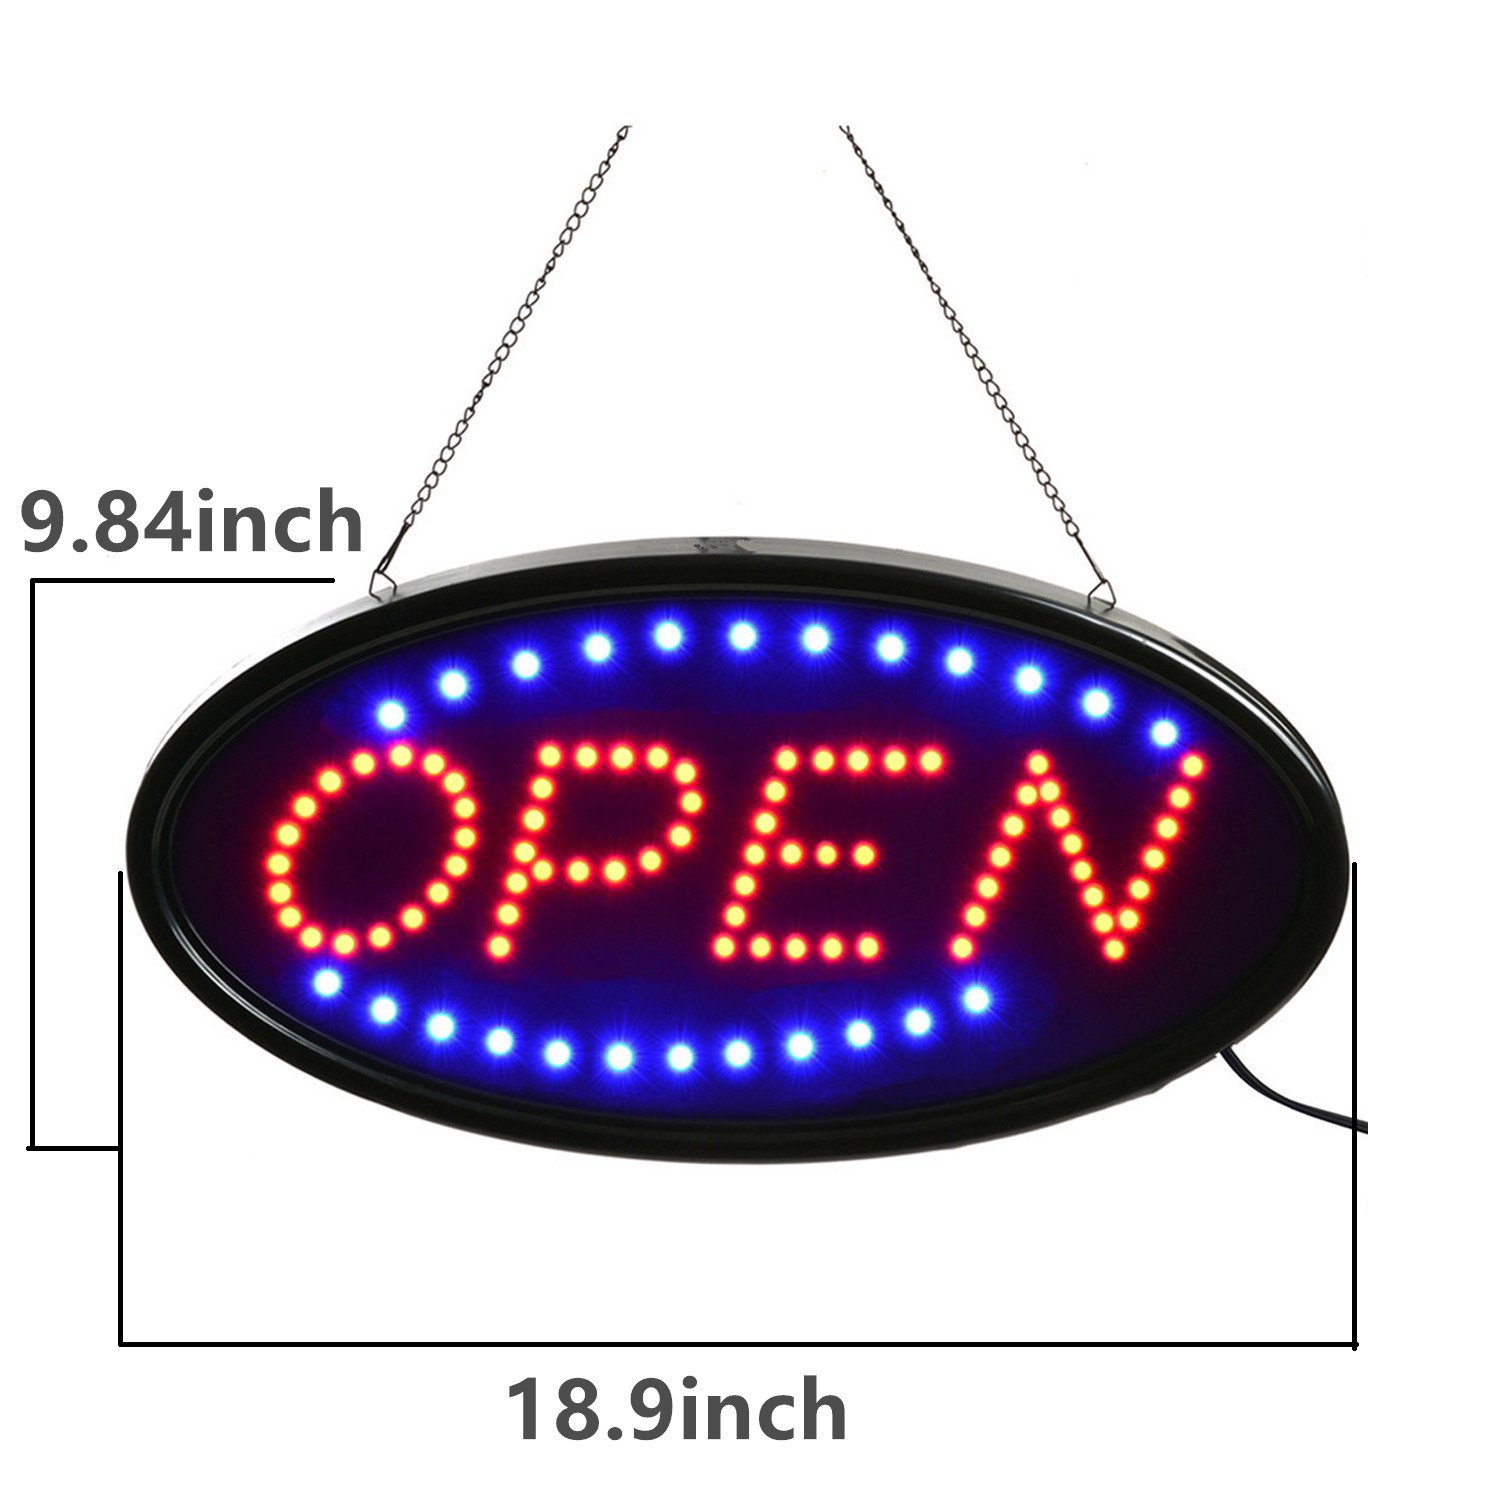 Open LED Sign,LED business open sign advertisement board Electric Display Sign,Light Up Sign 18.9''x9.84'' Flashing & Steady light, for business, walls, window, shop, bar, hotel (Blue+Red) by Datedirect (Image #5)